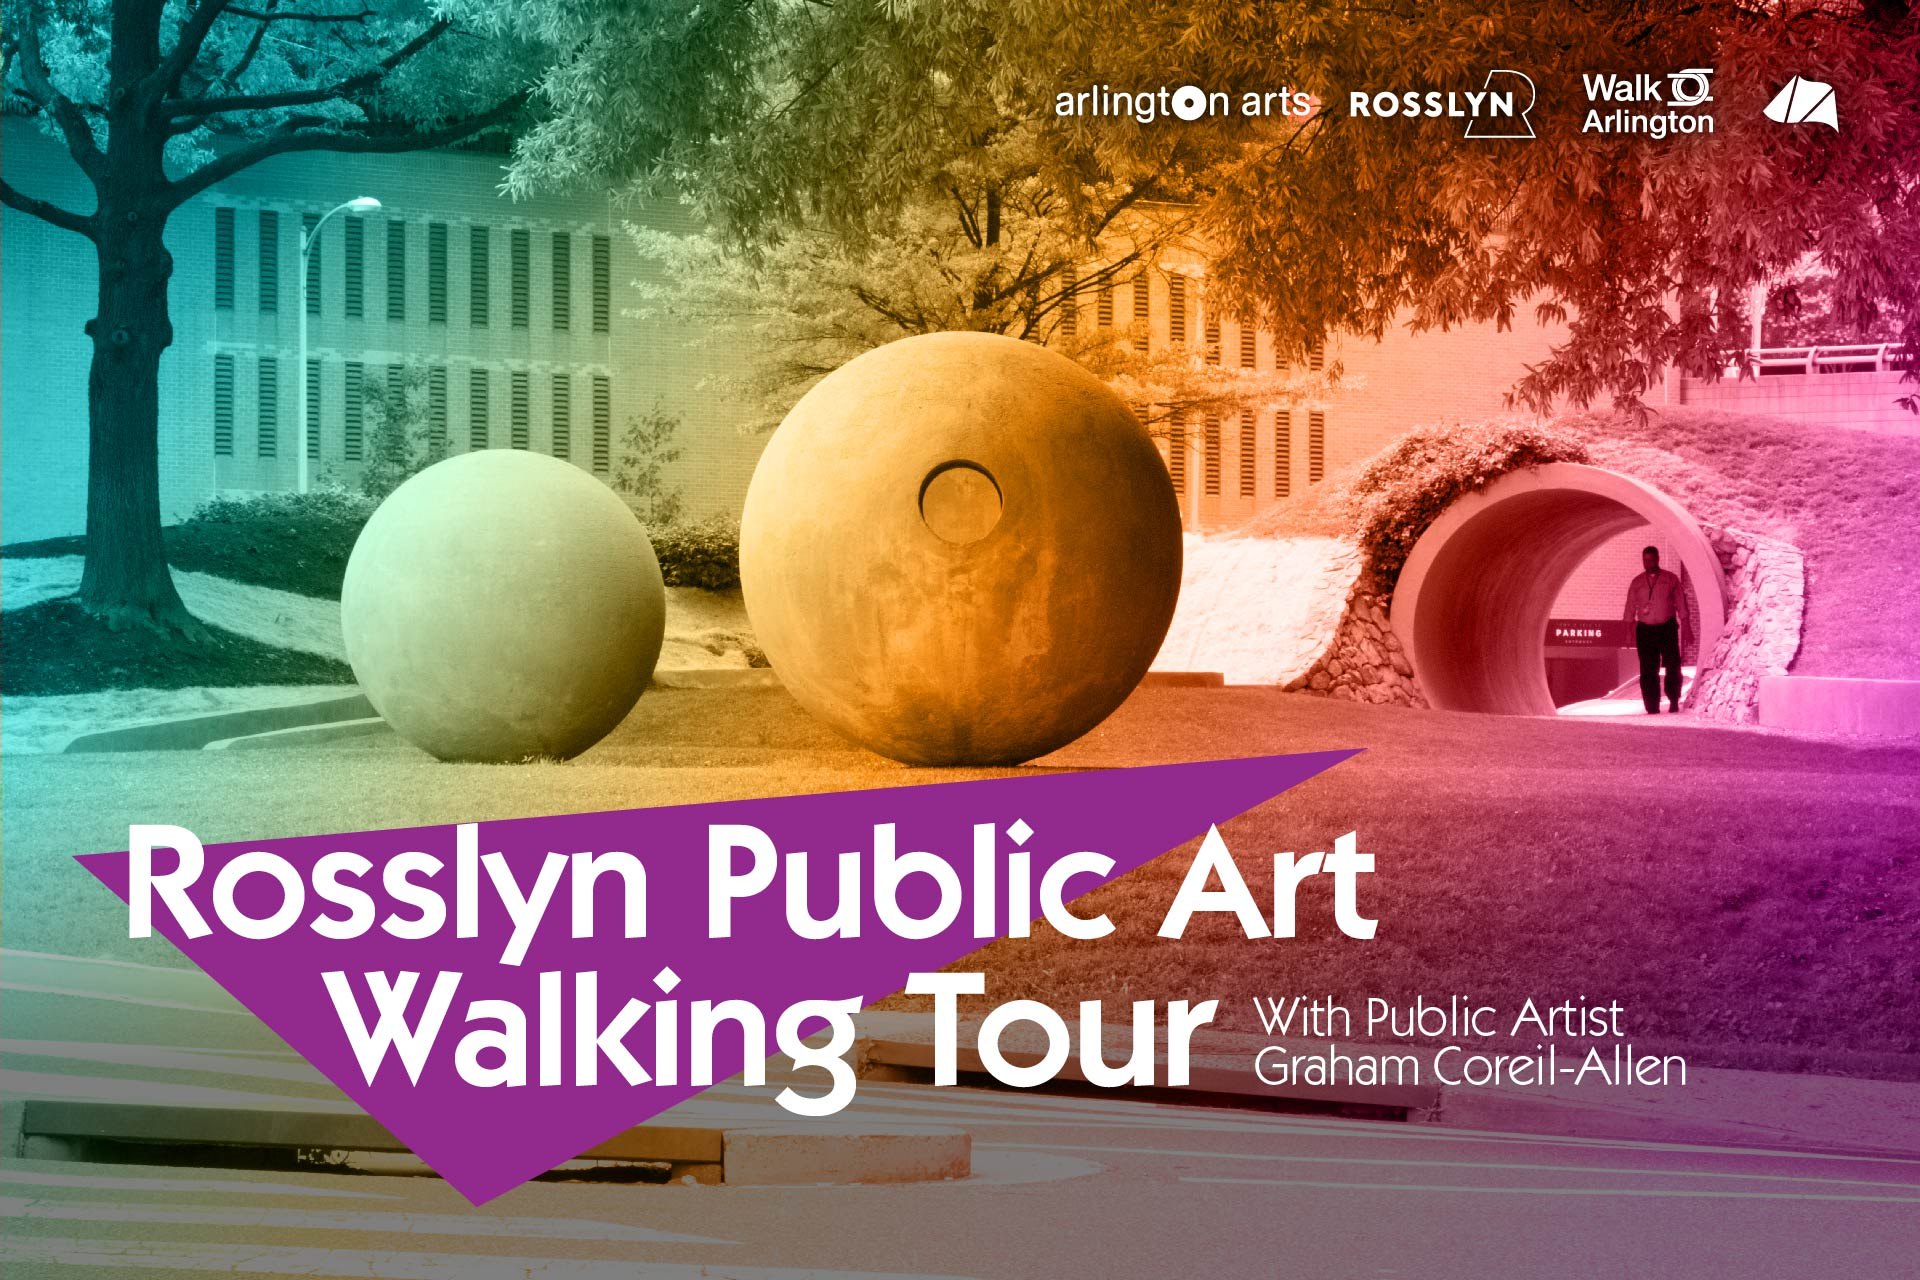 Rosslyn Public Art Walking Tours